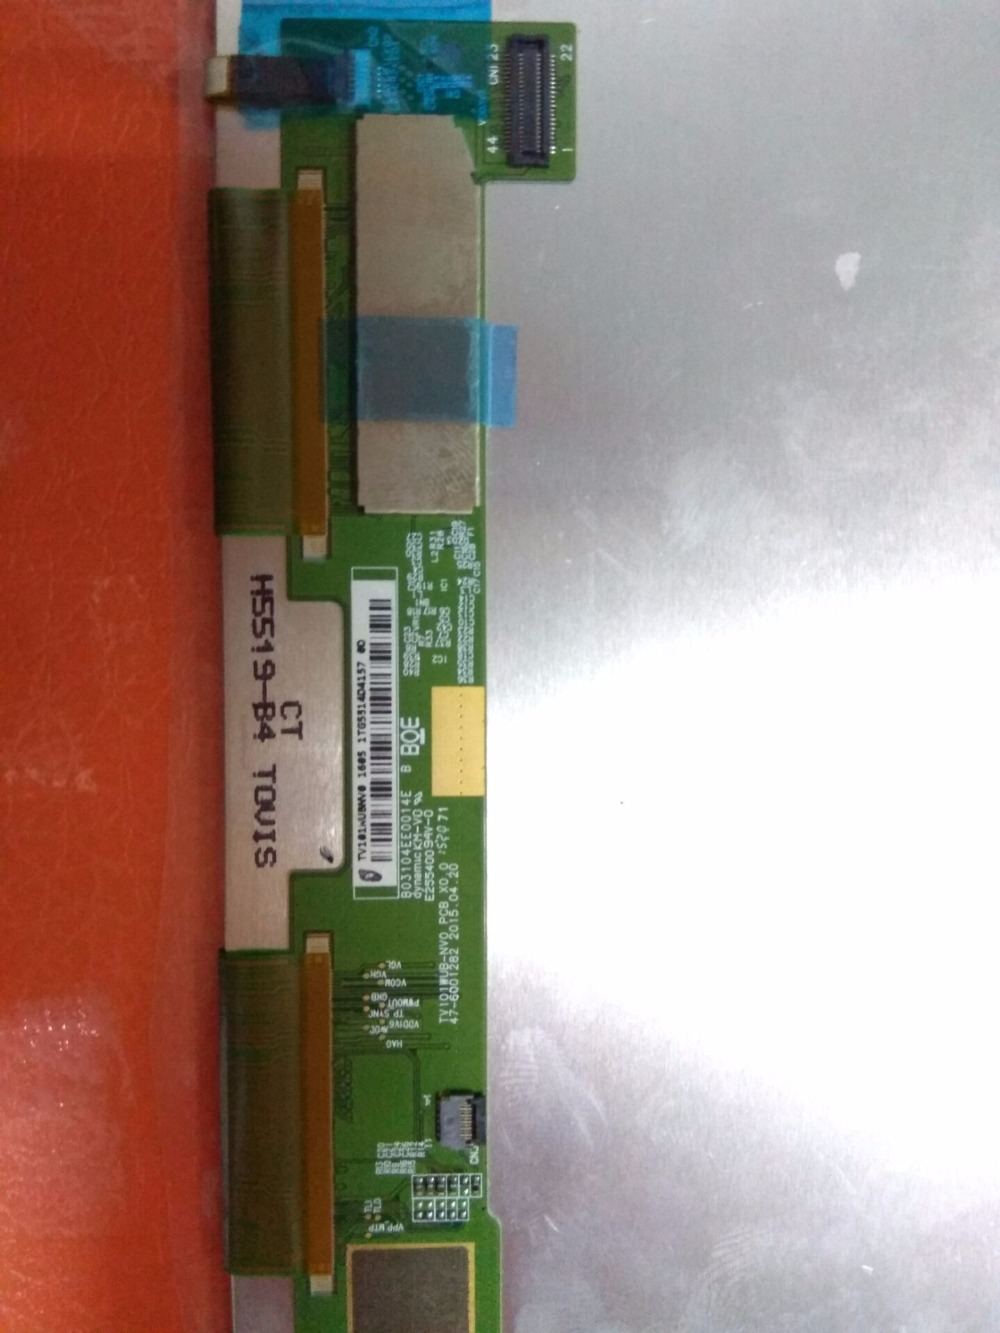 625 A+ LCD Display Matrix TV101WUB-NV0 PCB X0.0 LCD Screen Panel Replacement grisewood e edit shrek the third level 3 cd